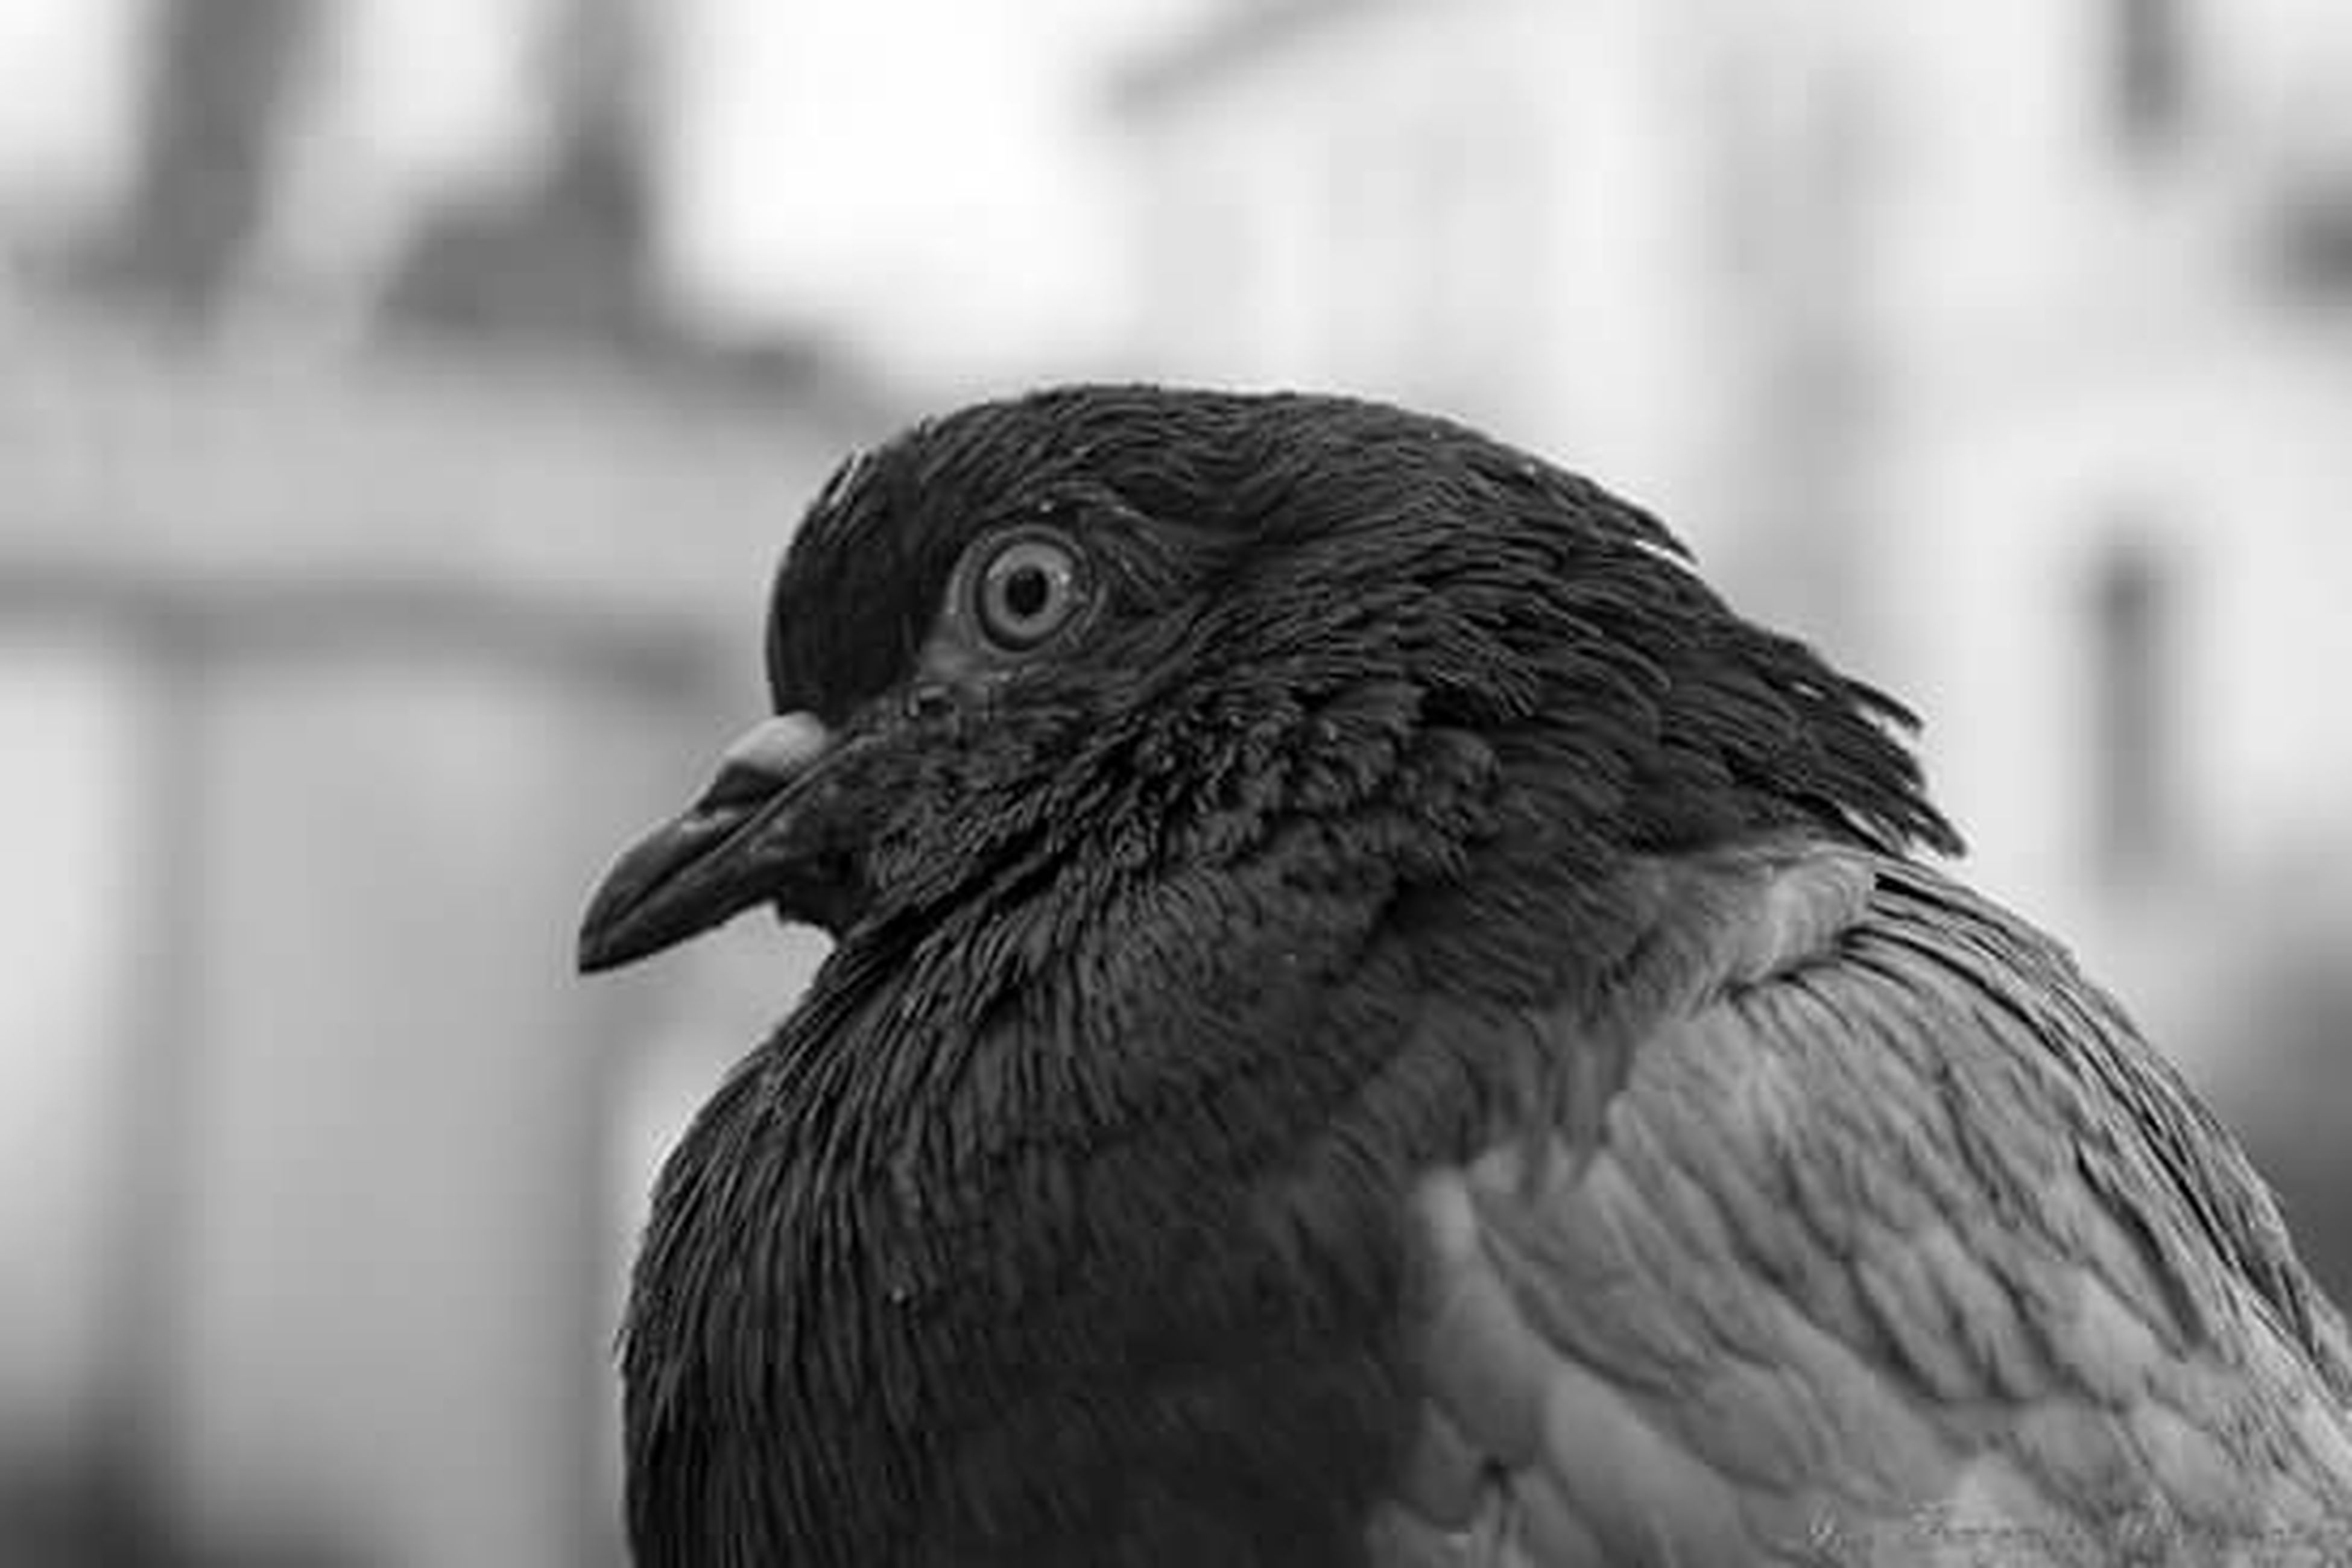 bird, animal themes, one animal, animals in the wild, wildlife, focus on foreground, close-up, beak, perching, bird of prey, side view, looking away, pigeon, outdoors, nature, day, no people, animal head, zoology, feather